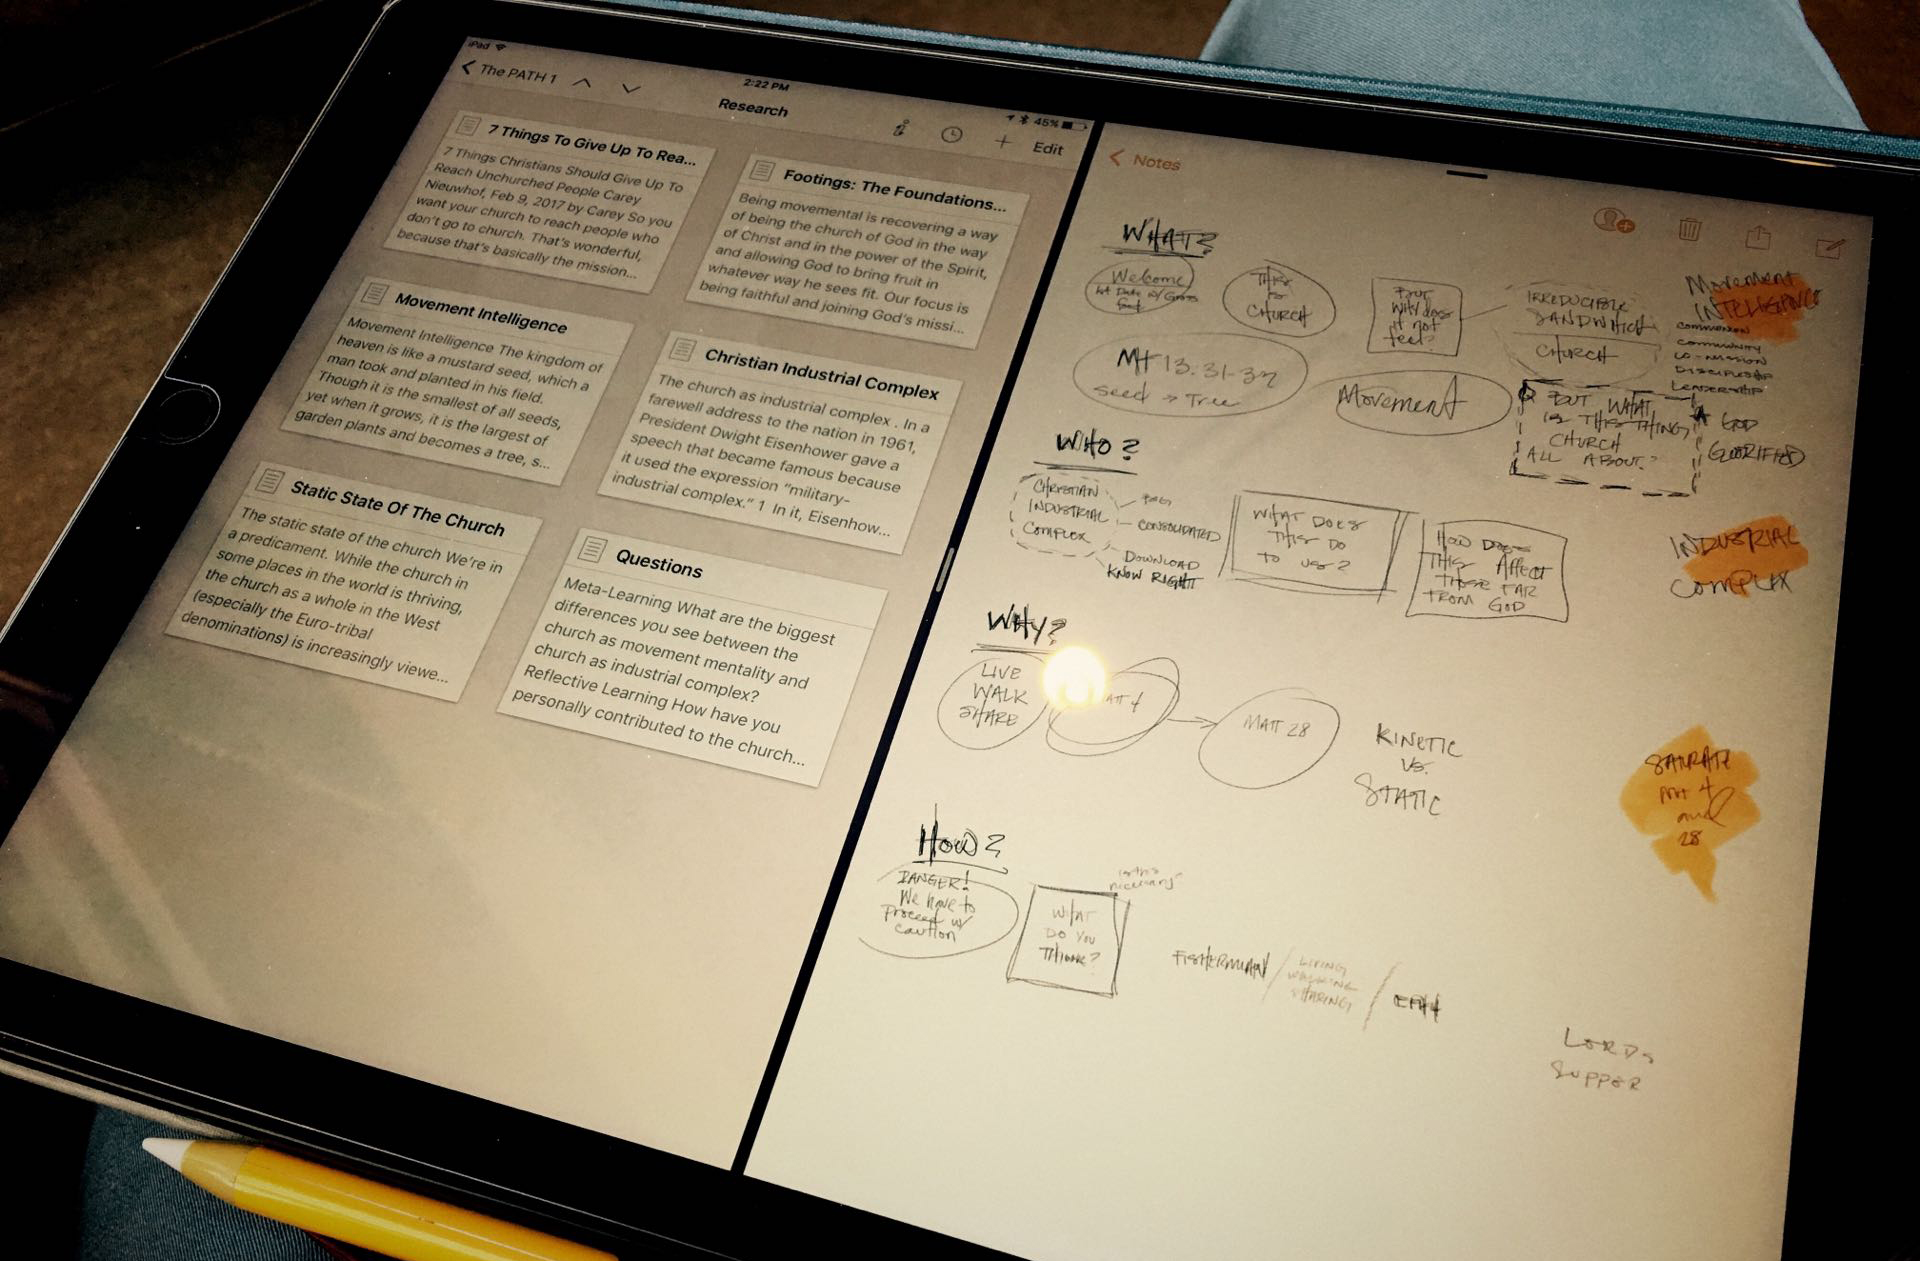 Made on iPad: Creative workflows and insights offered by